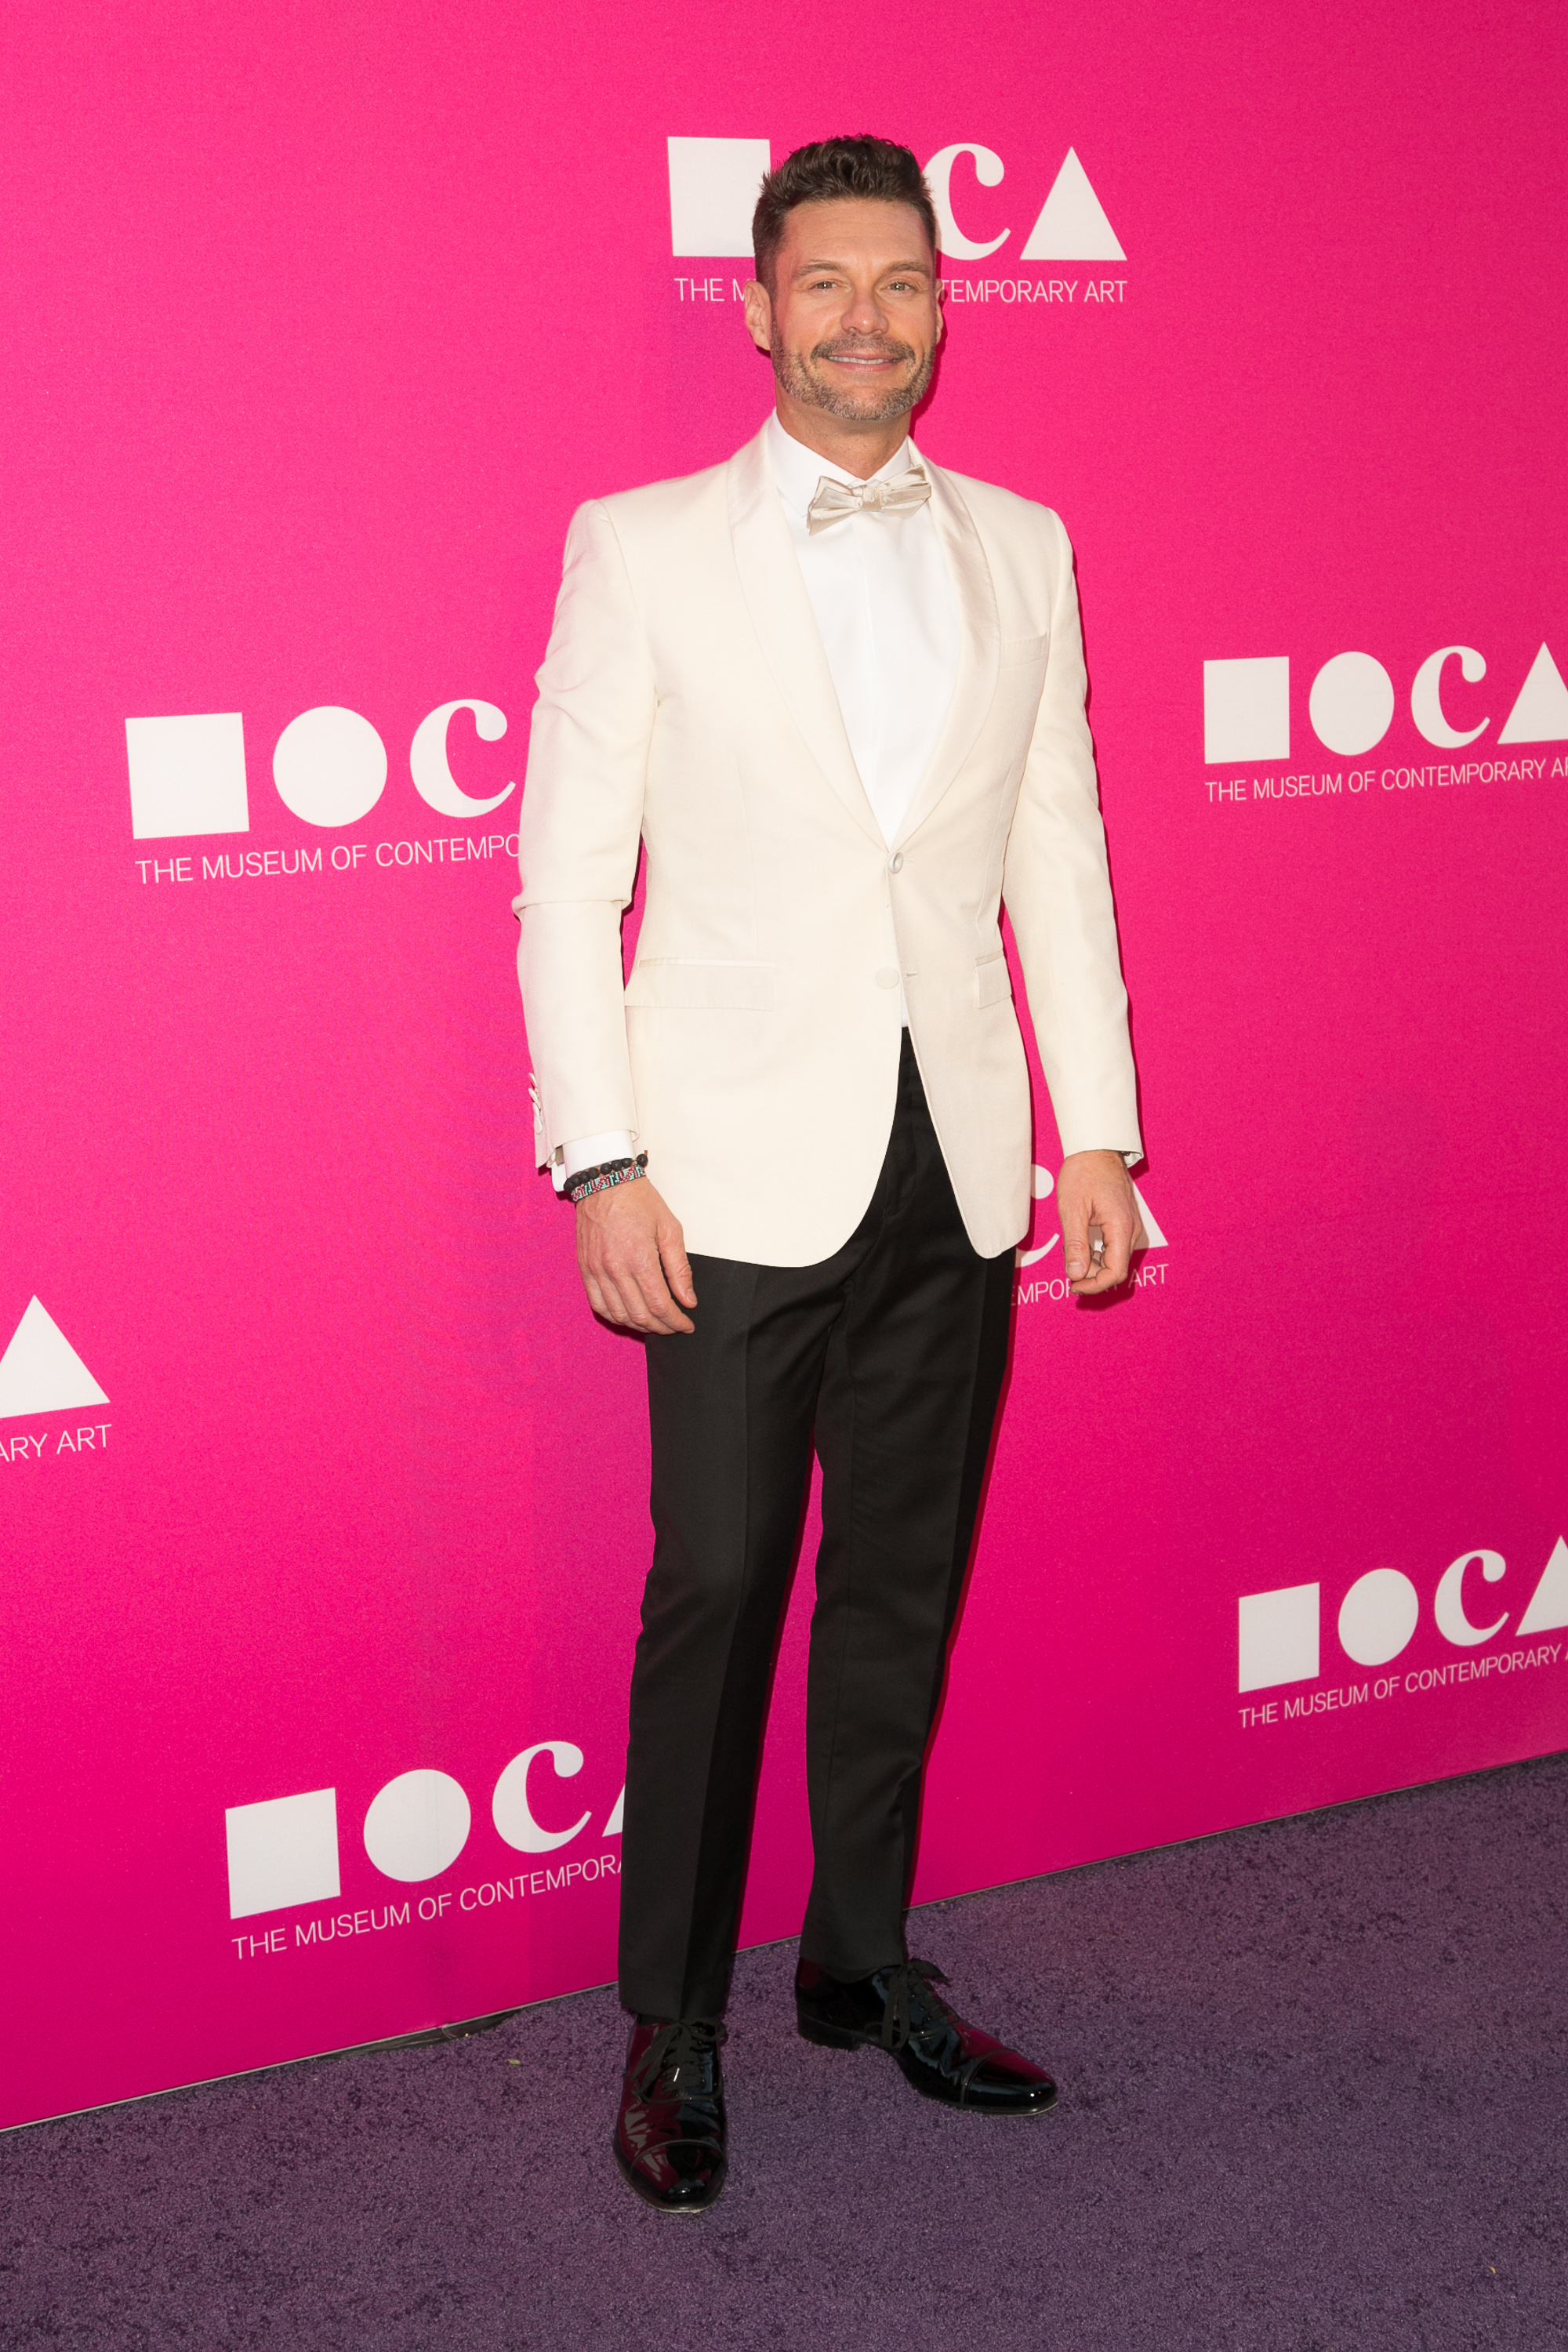 Celebrities attend MOCA Gala 2017 honoring Jeff Koons at The Geffen Contemporary at MOCA.                                    Featuring: Ryan Seacrest                  Where: Los Angeles, California, United States                  When: 30 Apr 2017                  Credit: Brian To/WENN.com